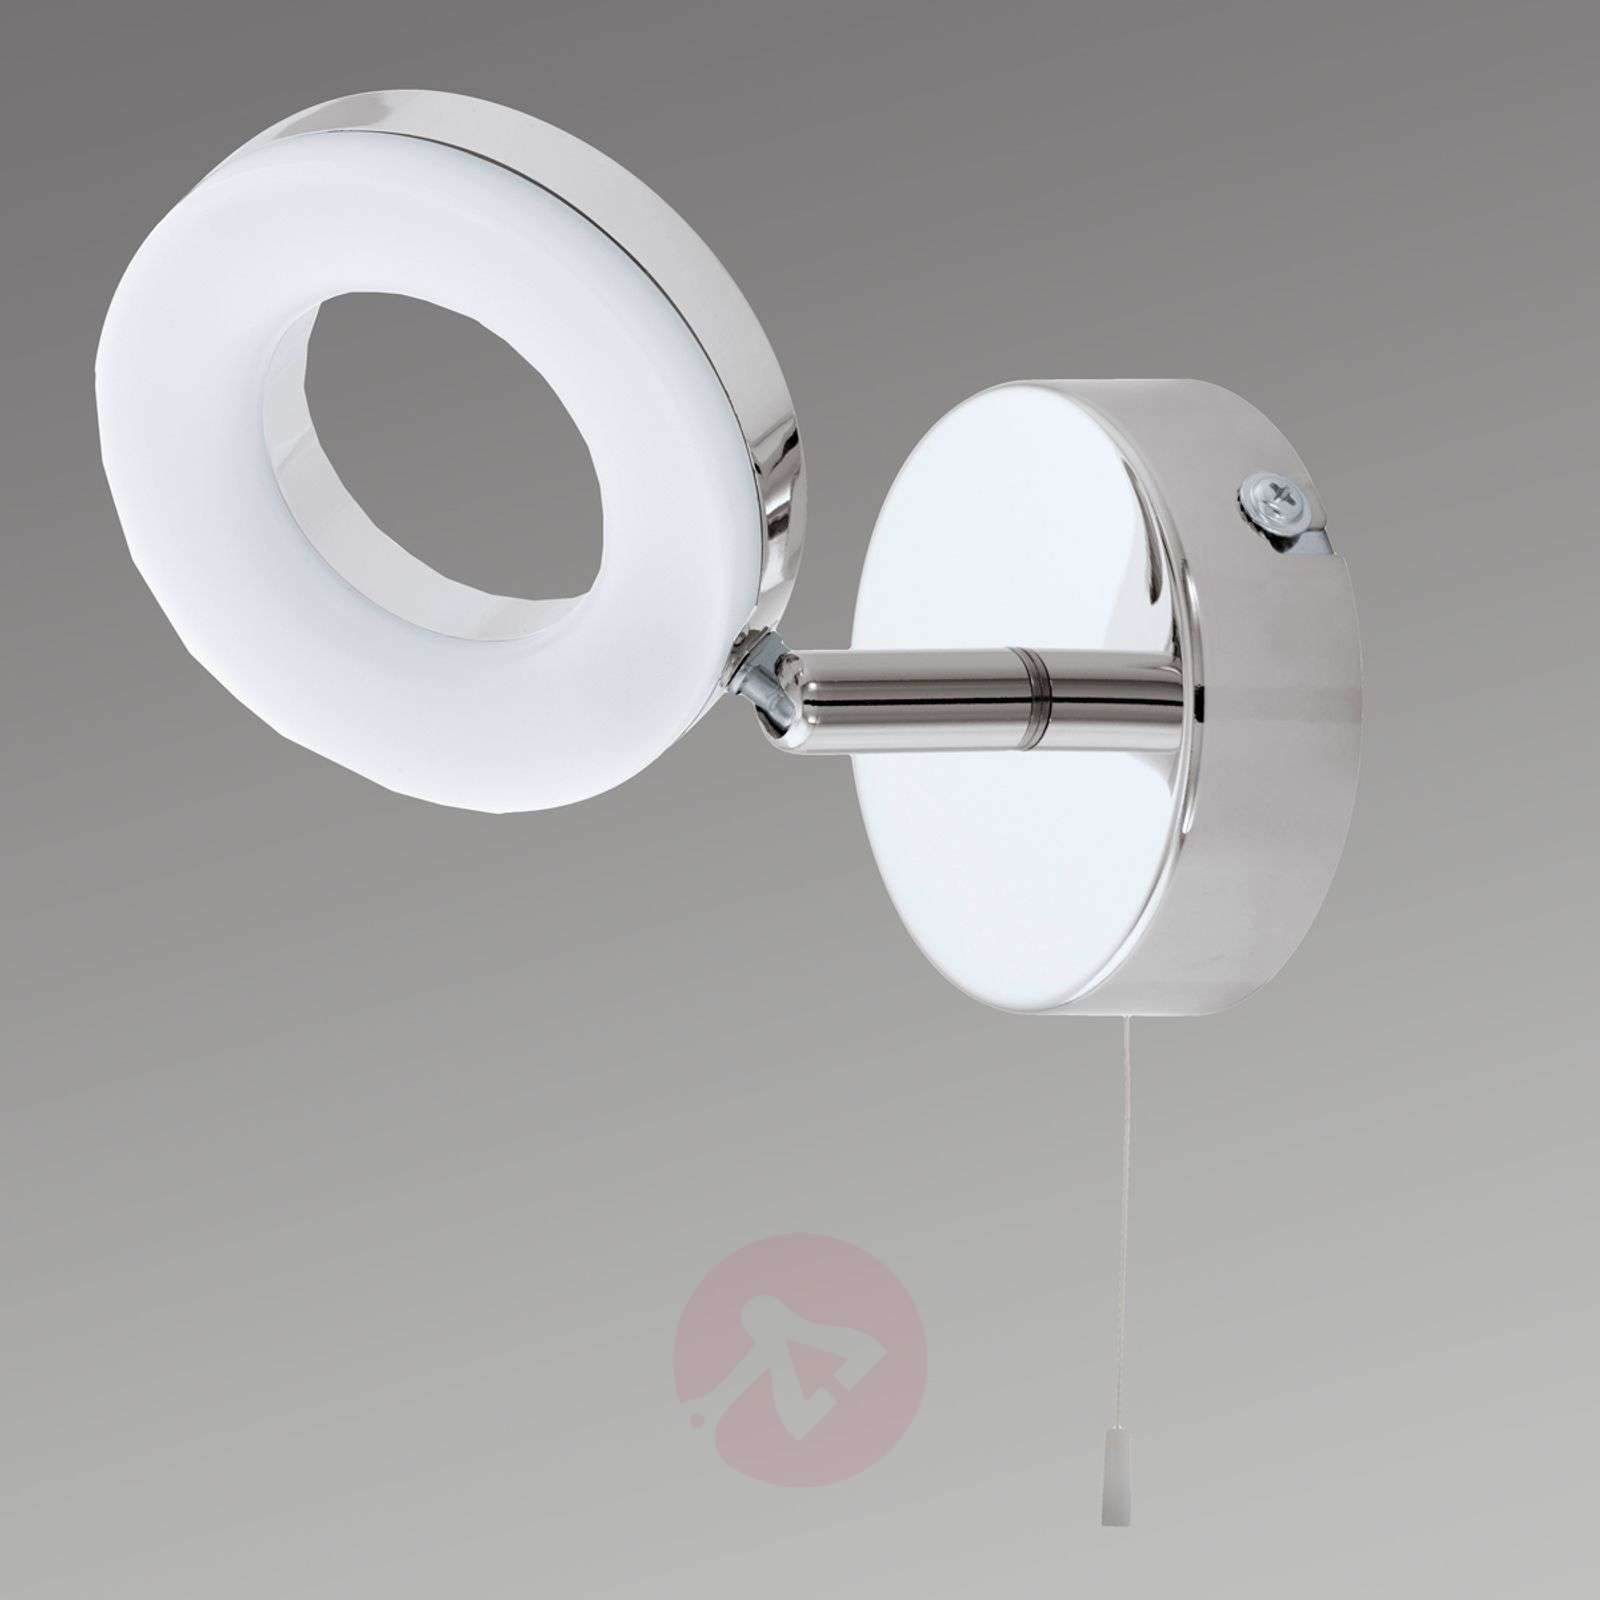 Practical Gonaro LED wall lamp, pull cord-3031851-01